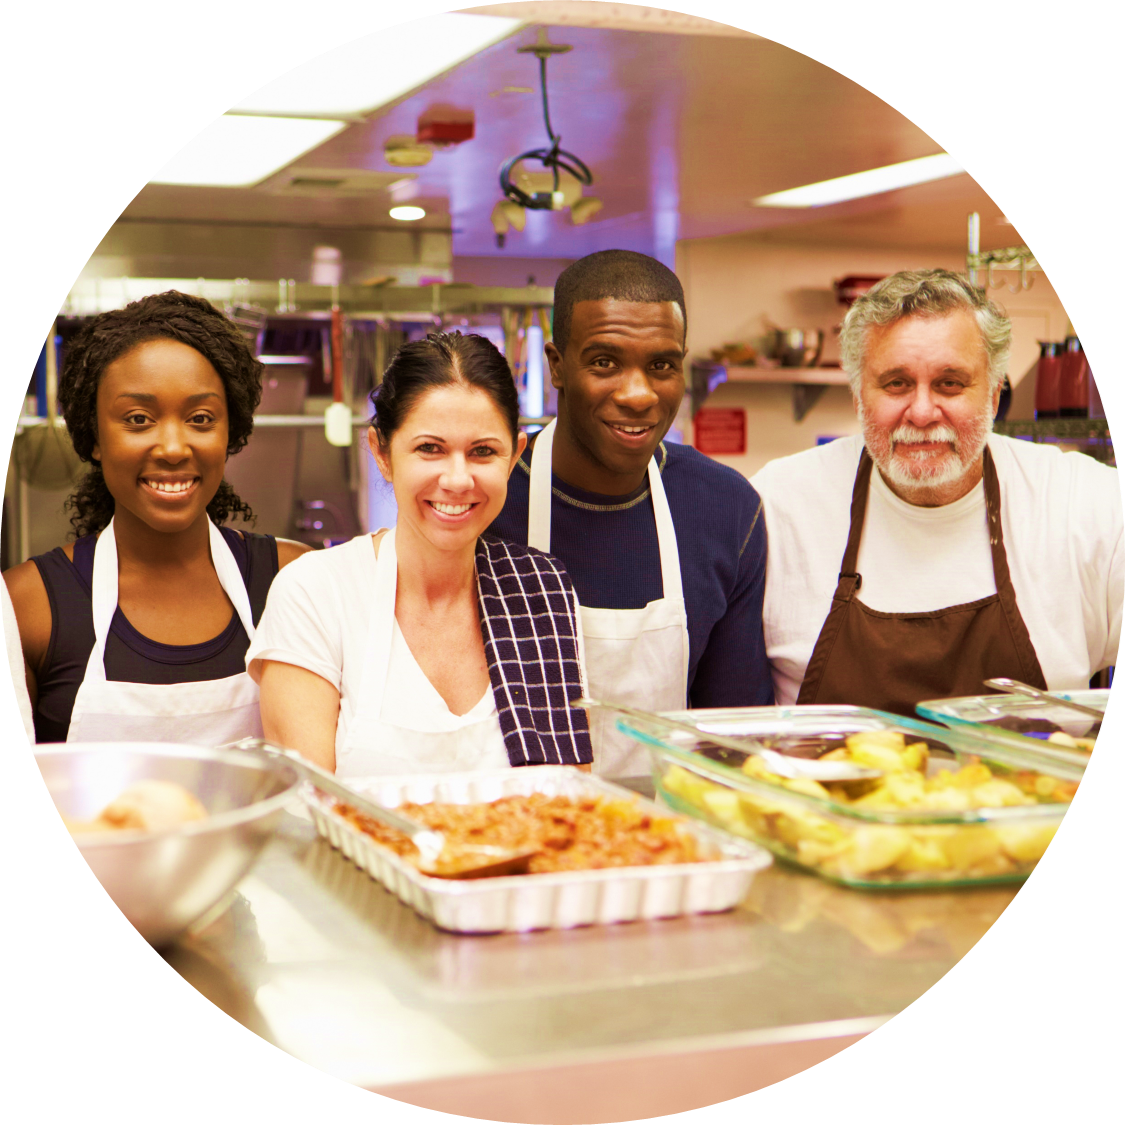 Guest Post: Things to consider before engaging in corporate employee volunteerism